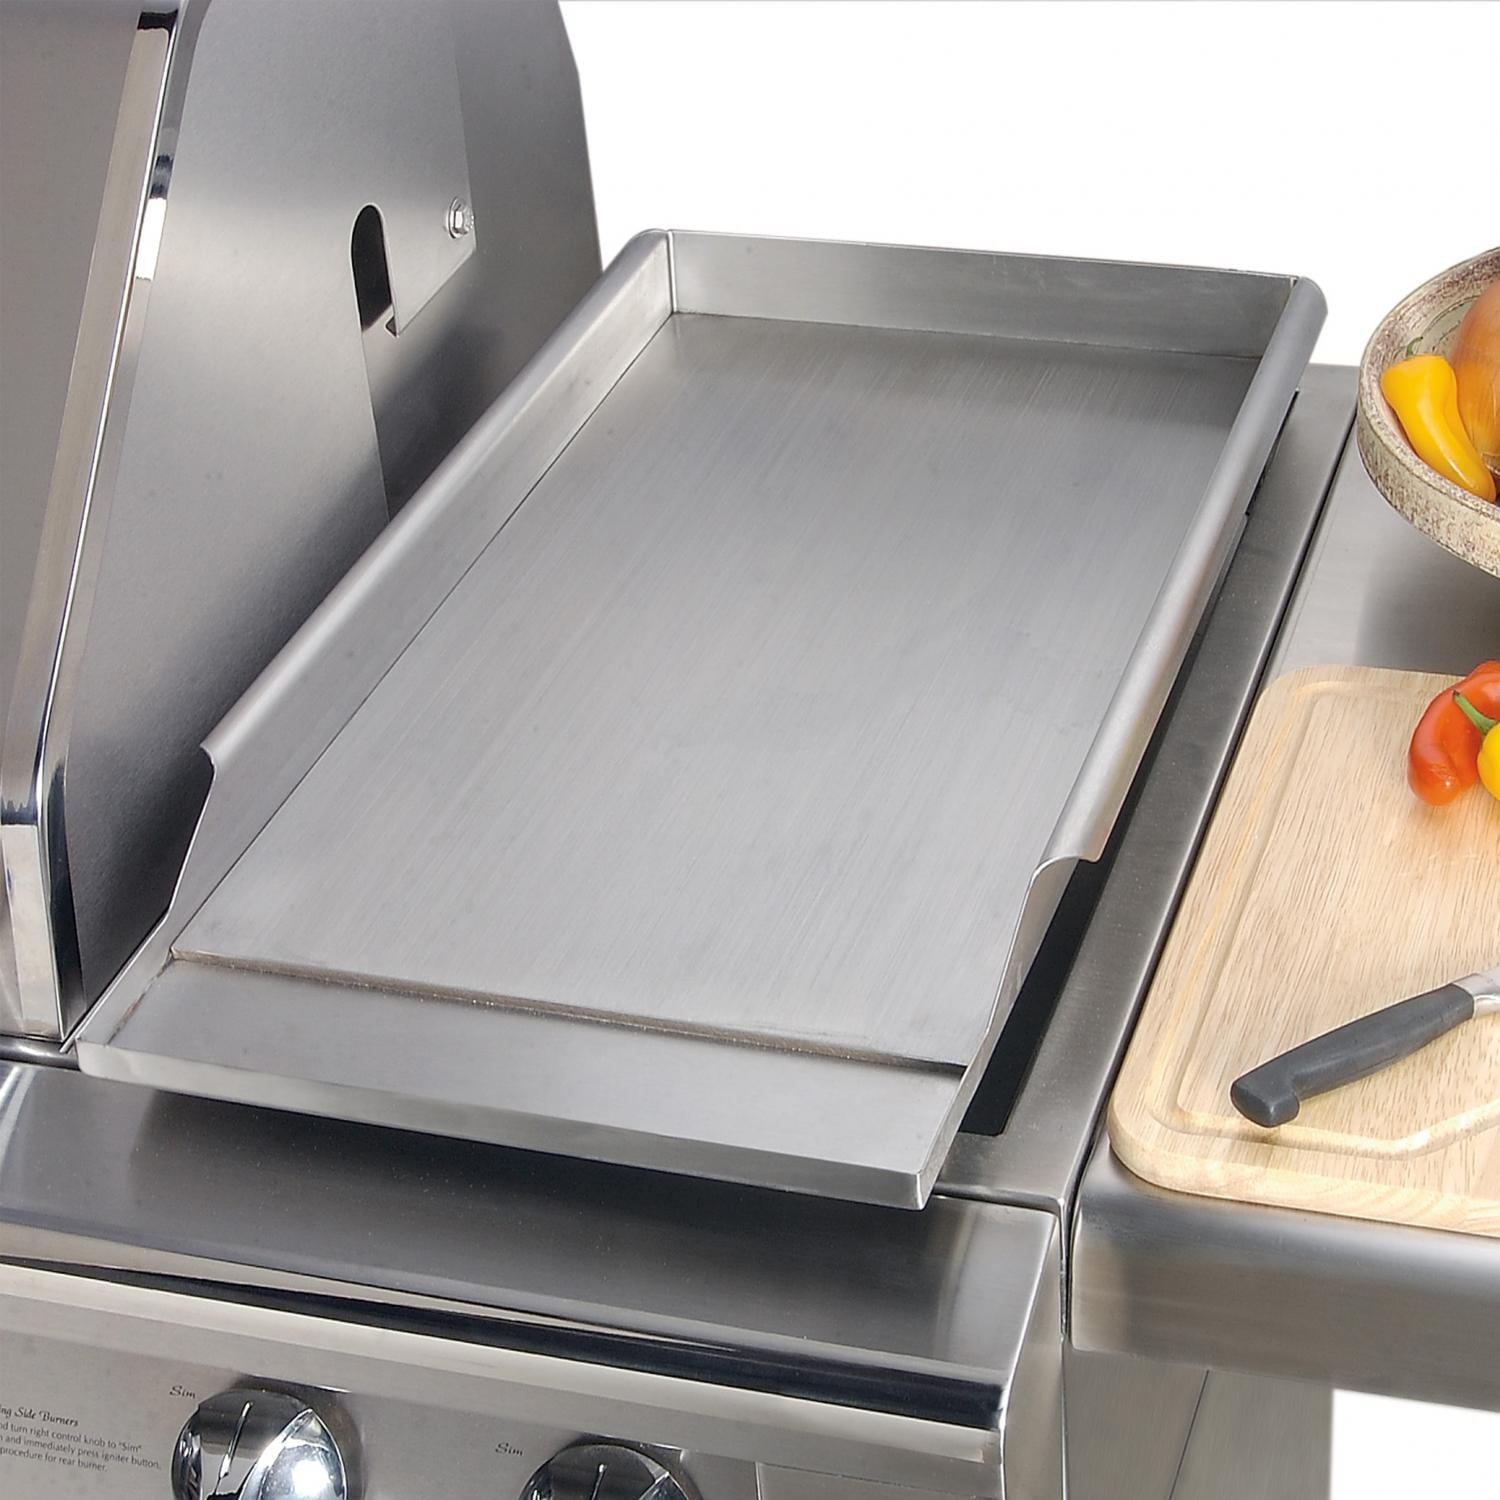 Alfresco Griddle For Alfresco Side Burners